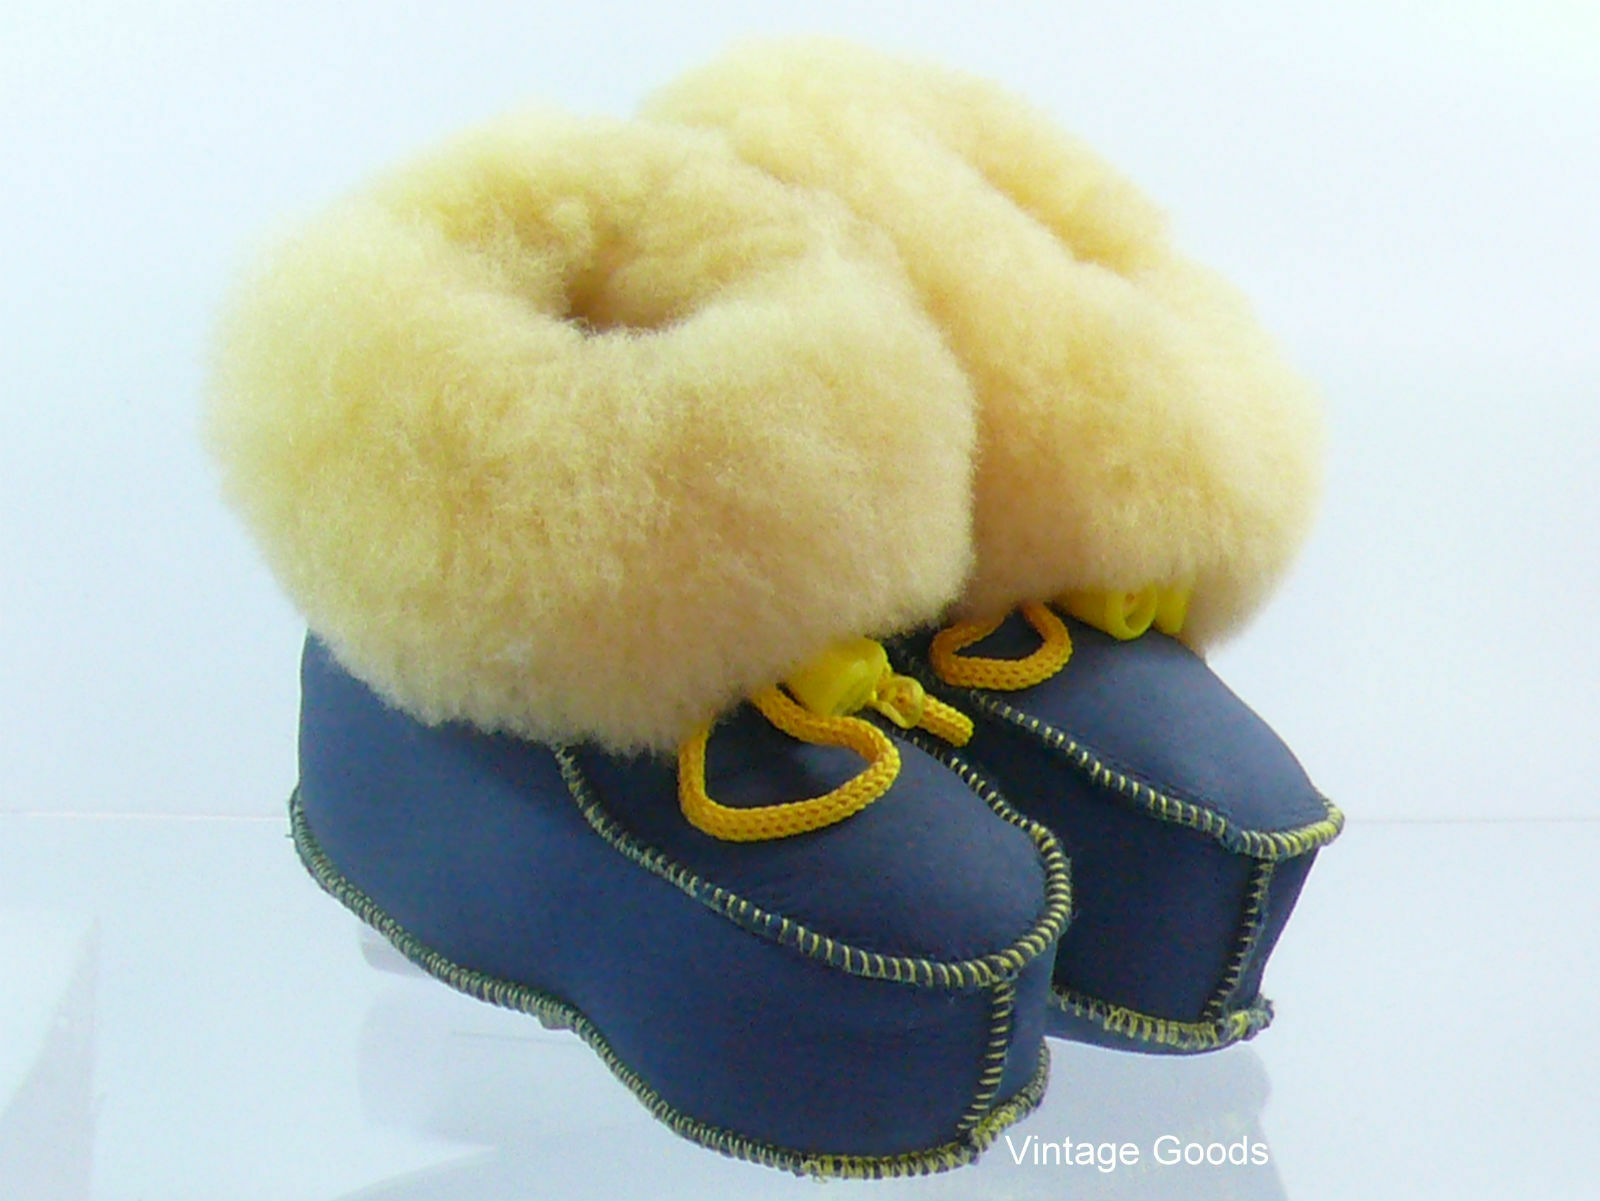 SHEEPSKIN SLIPPERS/BOOTS FOR BABY 100% GENUINE LEATHER UNISEX SIZE  5/6 1